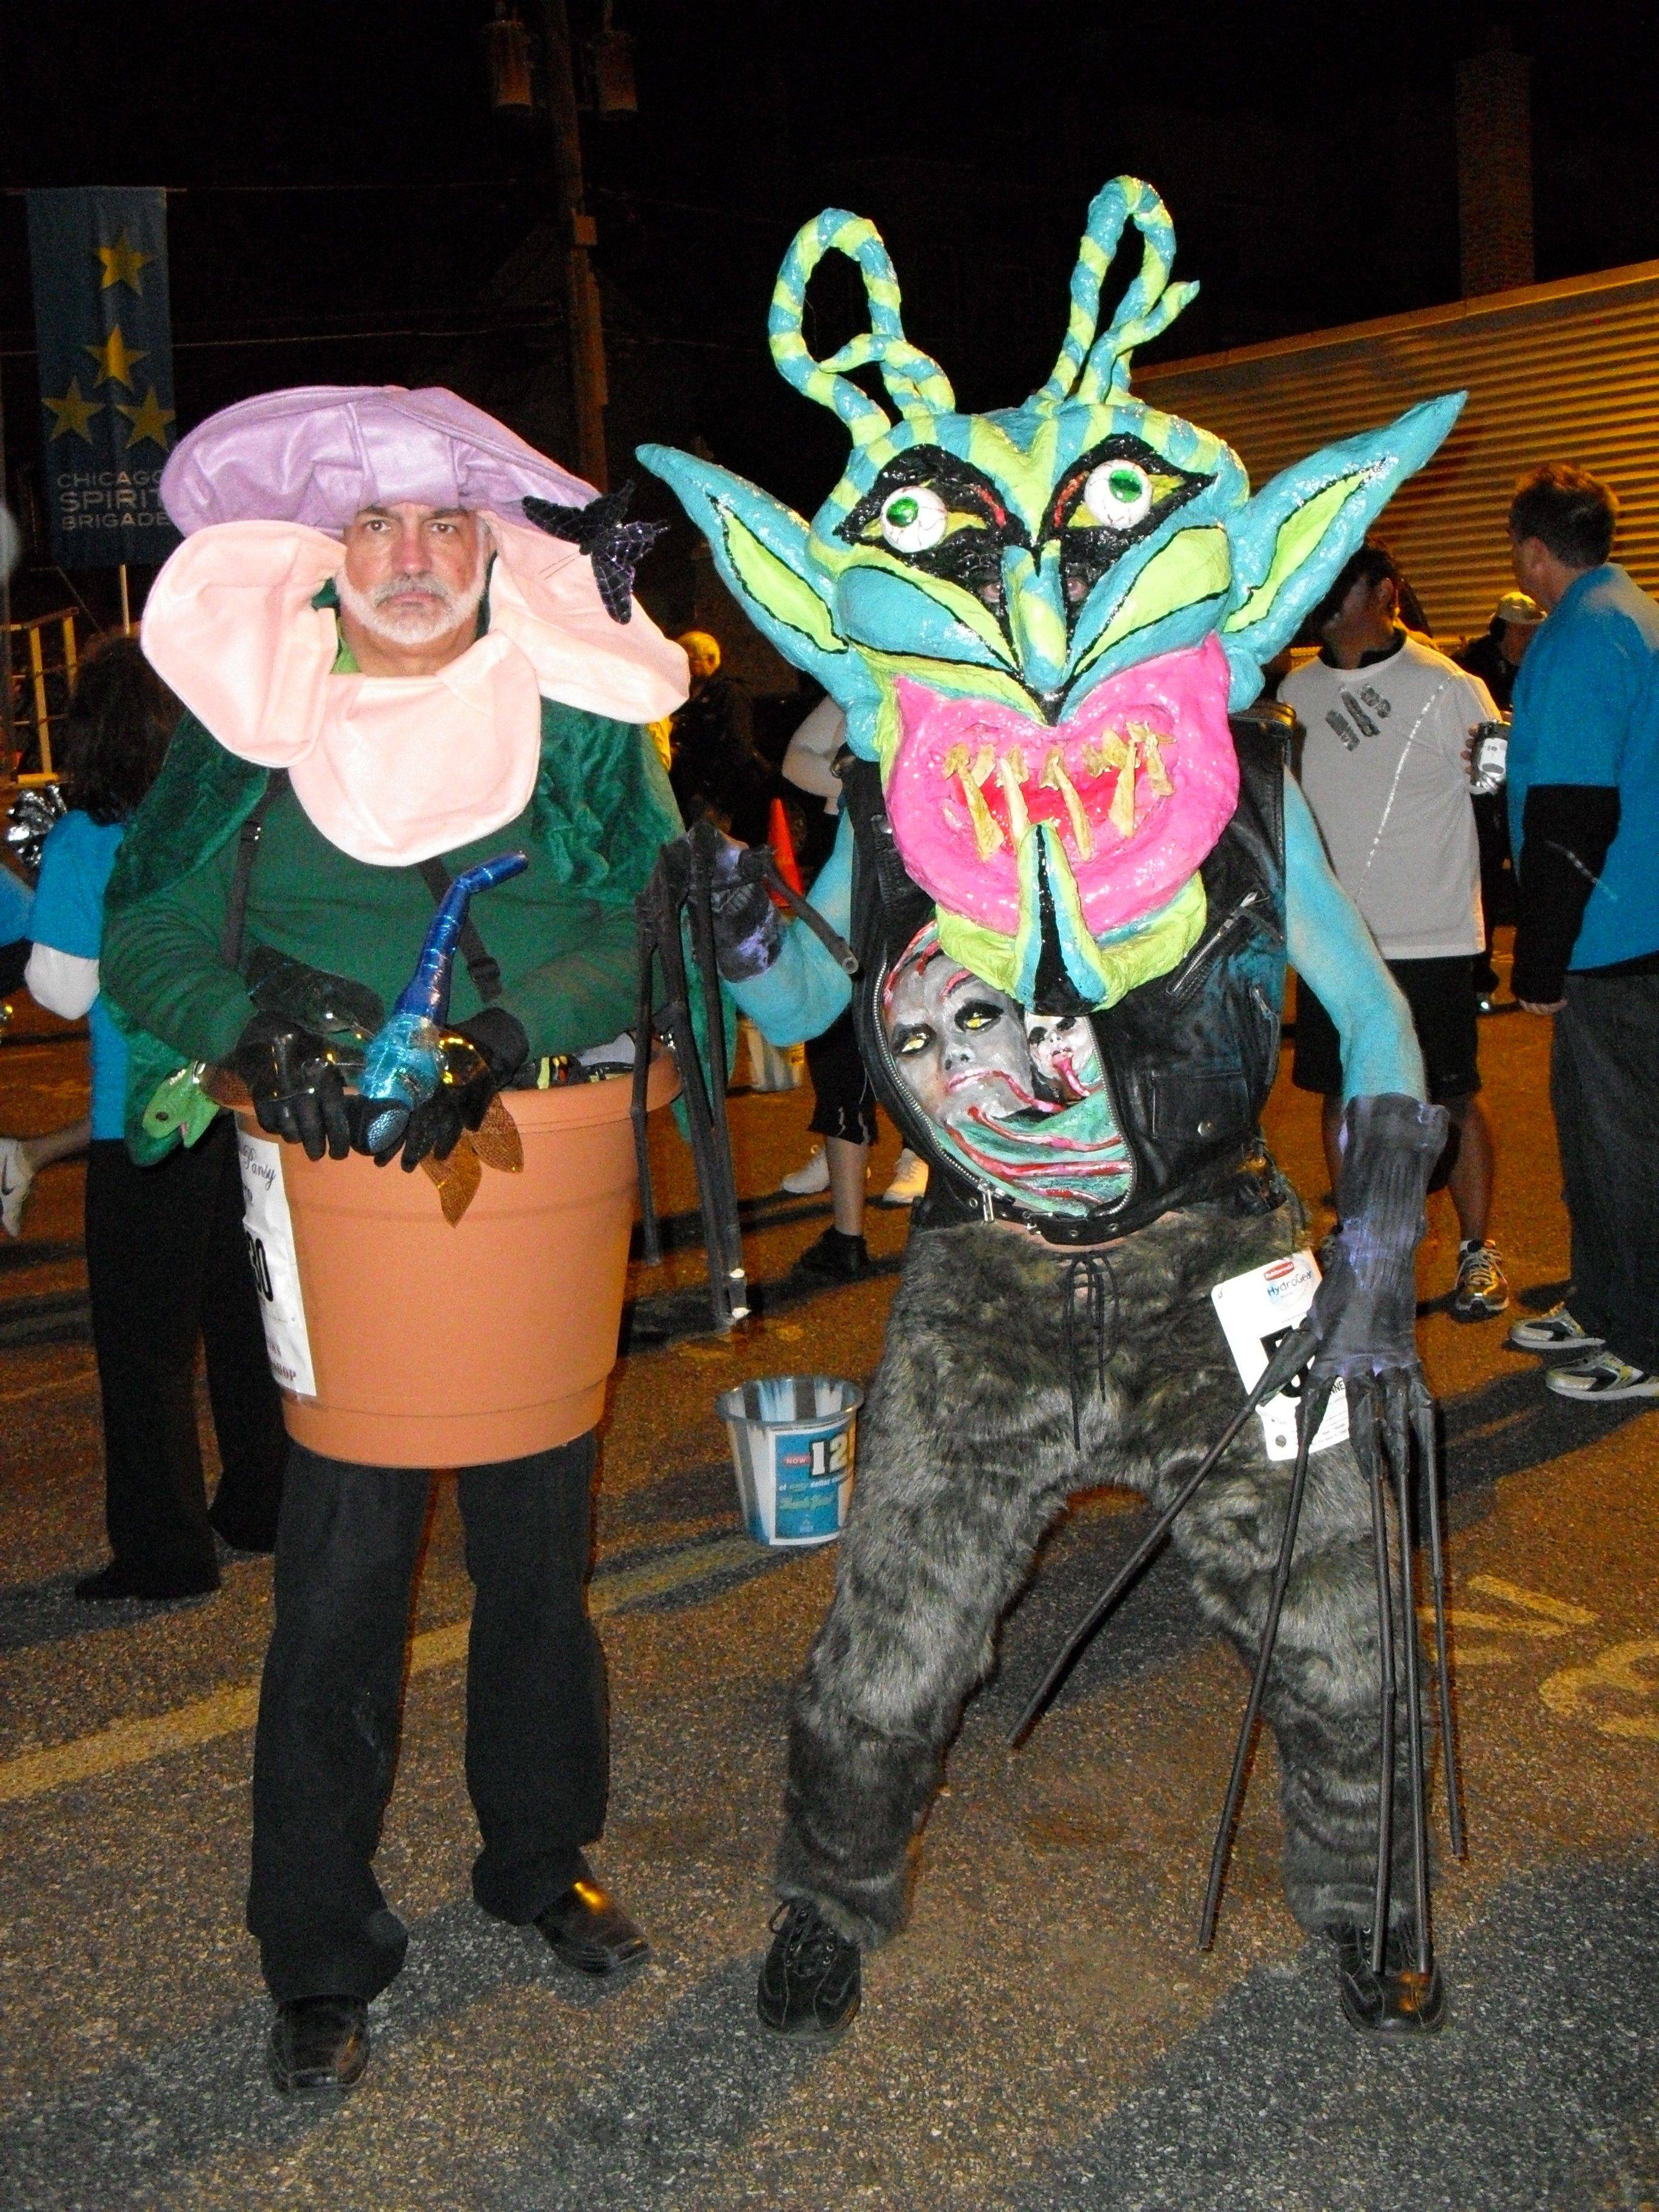 A self-watering plant and a horrific creature at the 2010 North Halsted Street Halloween Parade.